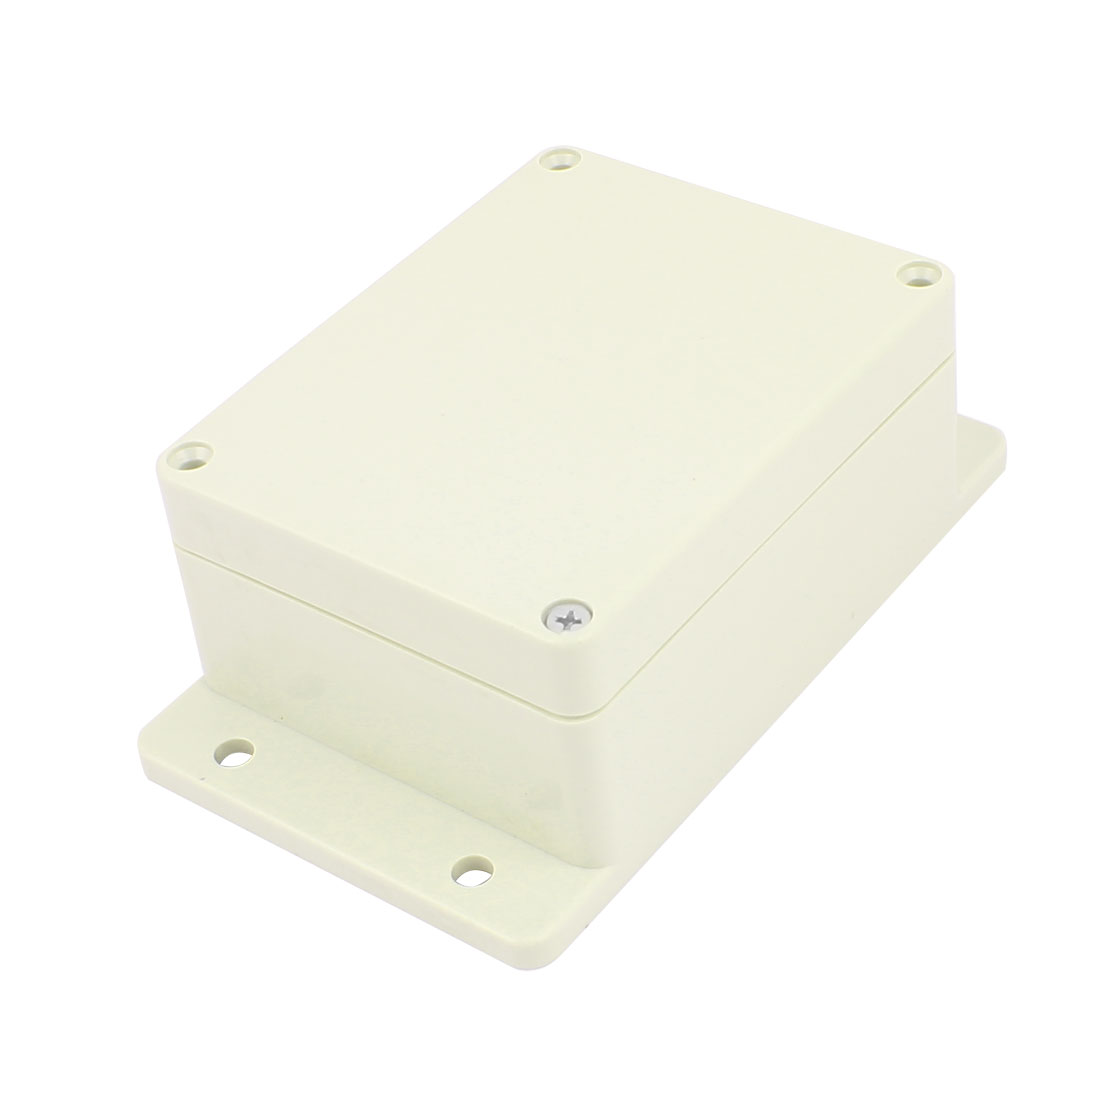 Dustproof IP65 Junction Box Case Terminal Connection Enclosure Adaptable 107mm x 82mm x 47mm